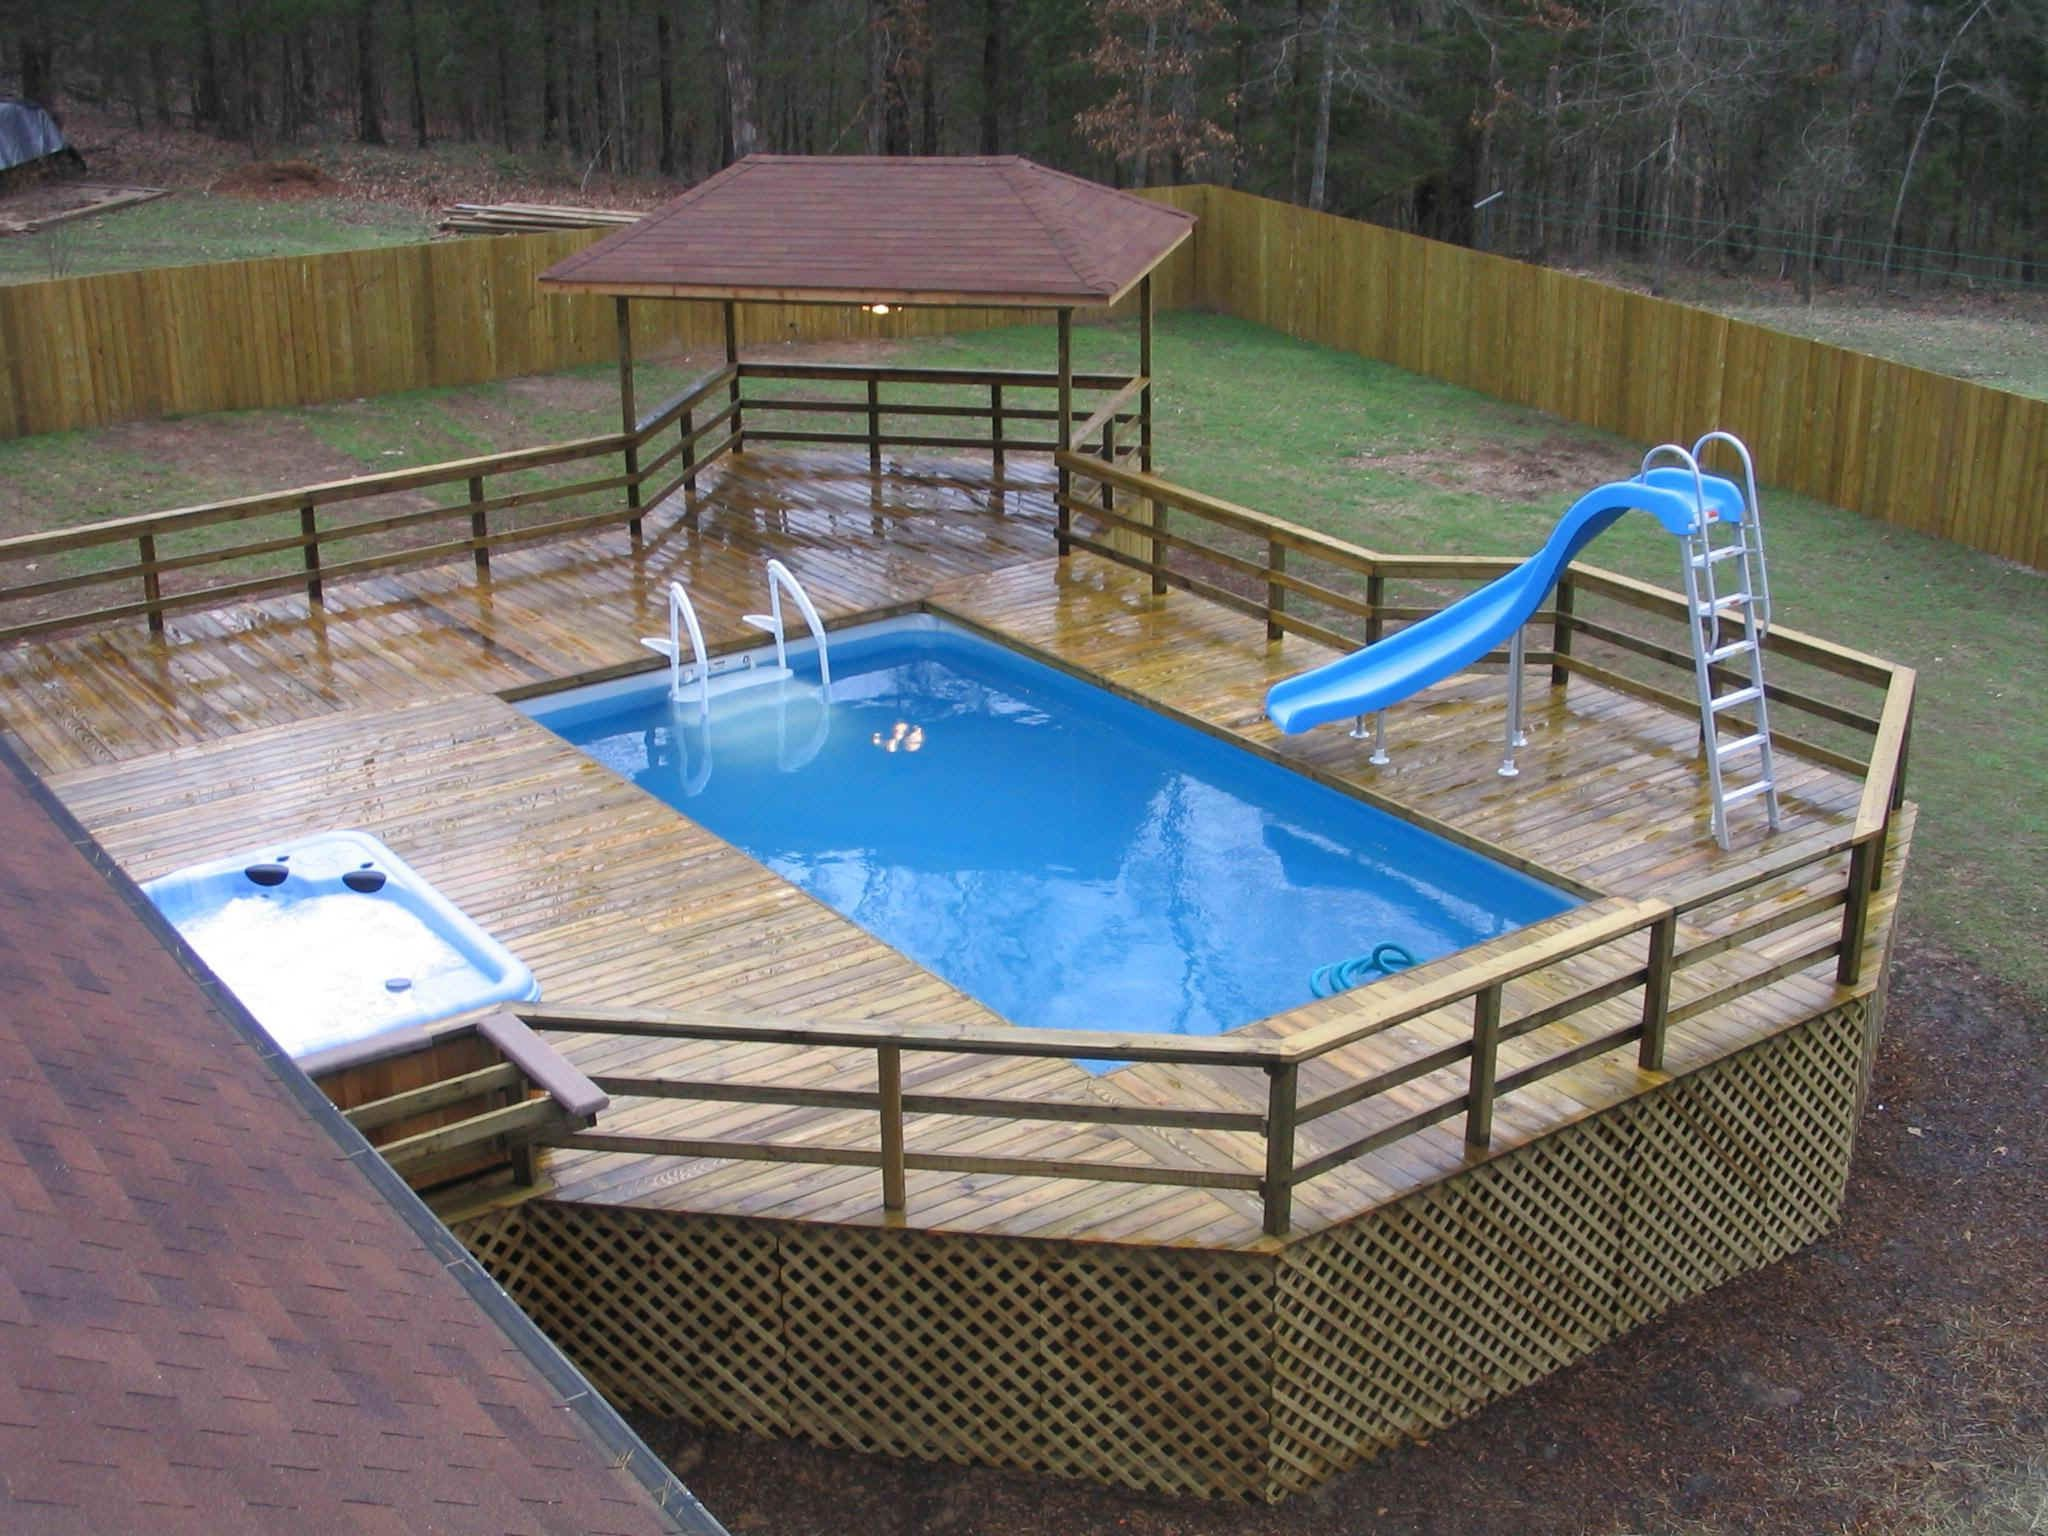 Pool decks above ground pictures - Narrowest Rectangular Above Ground Pool Pool Slides With Wooden Floor Around Rectangular